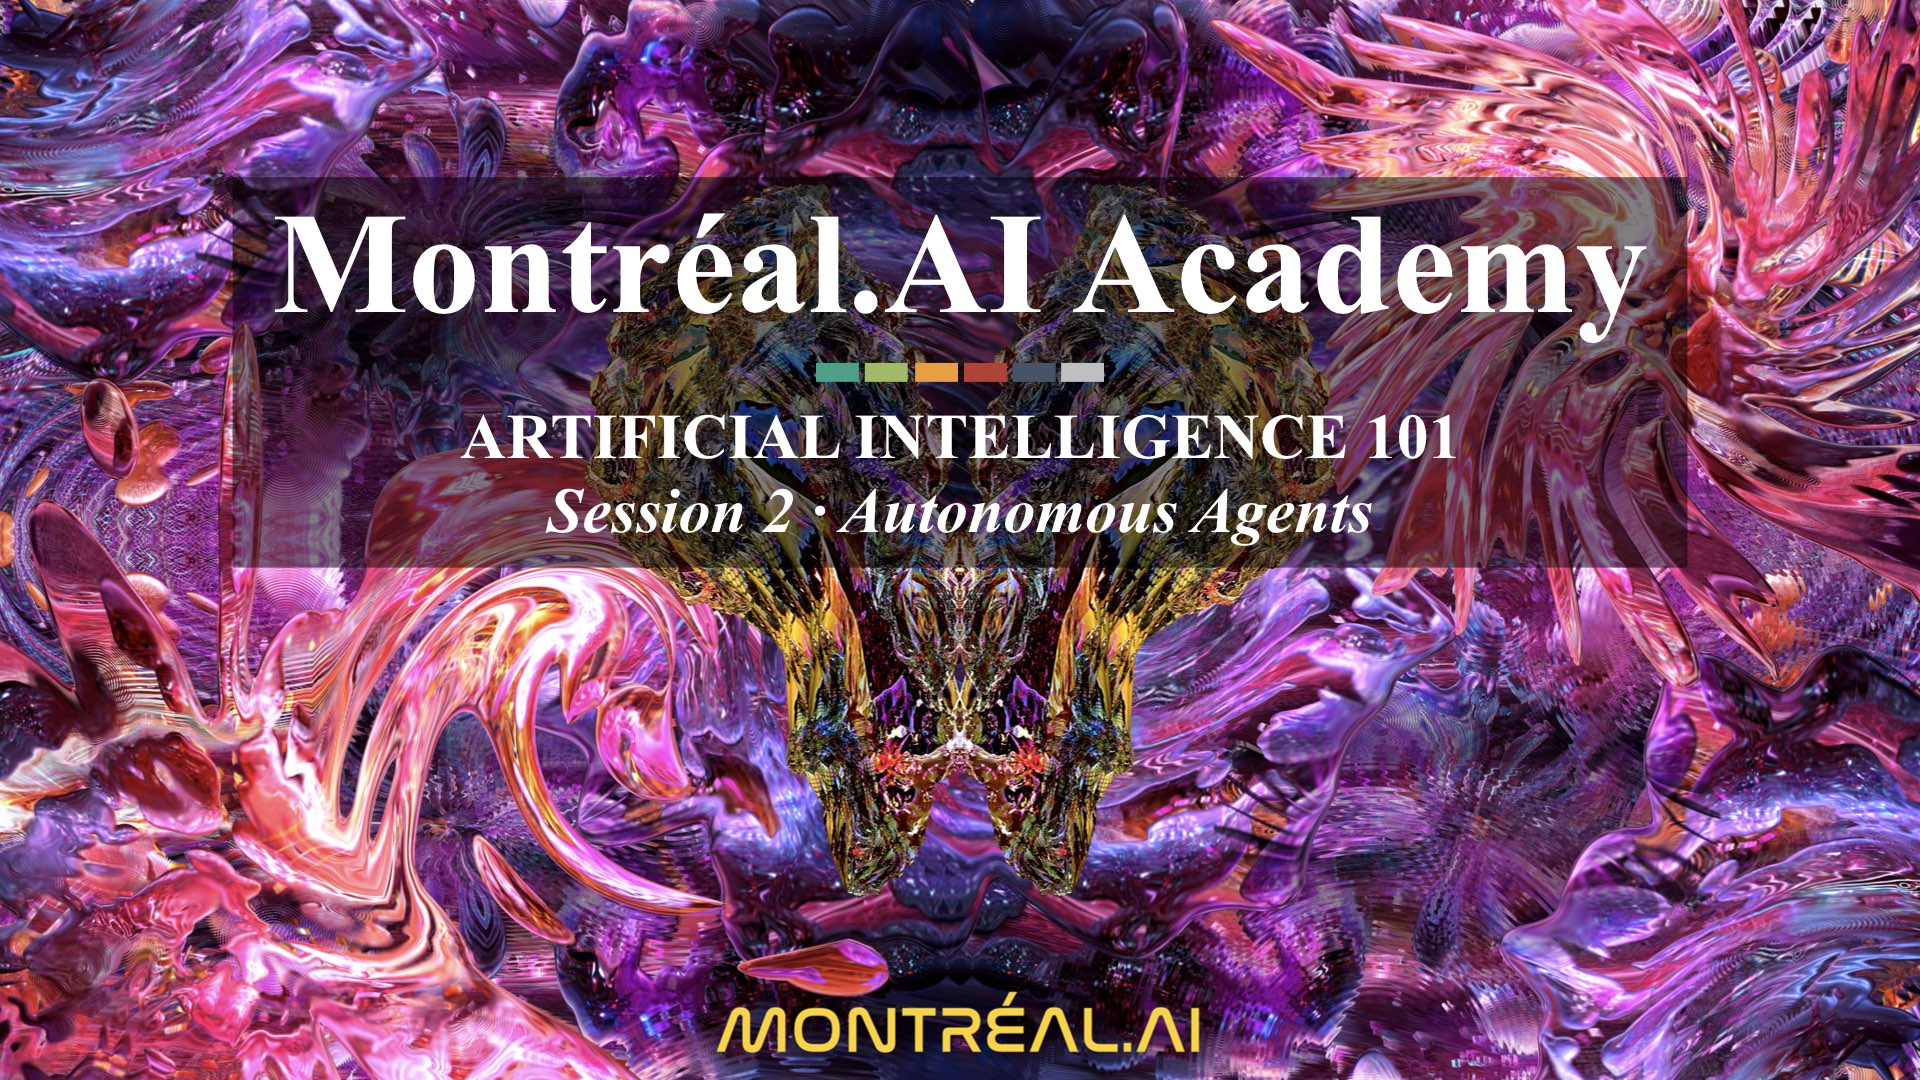 Artificial Intelligence 101: The First World-Class Overview of AI for the General Public | Autonomous Agents